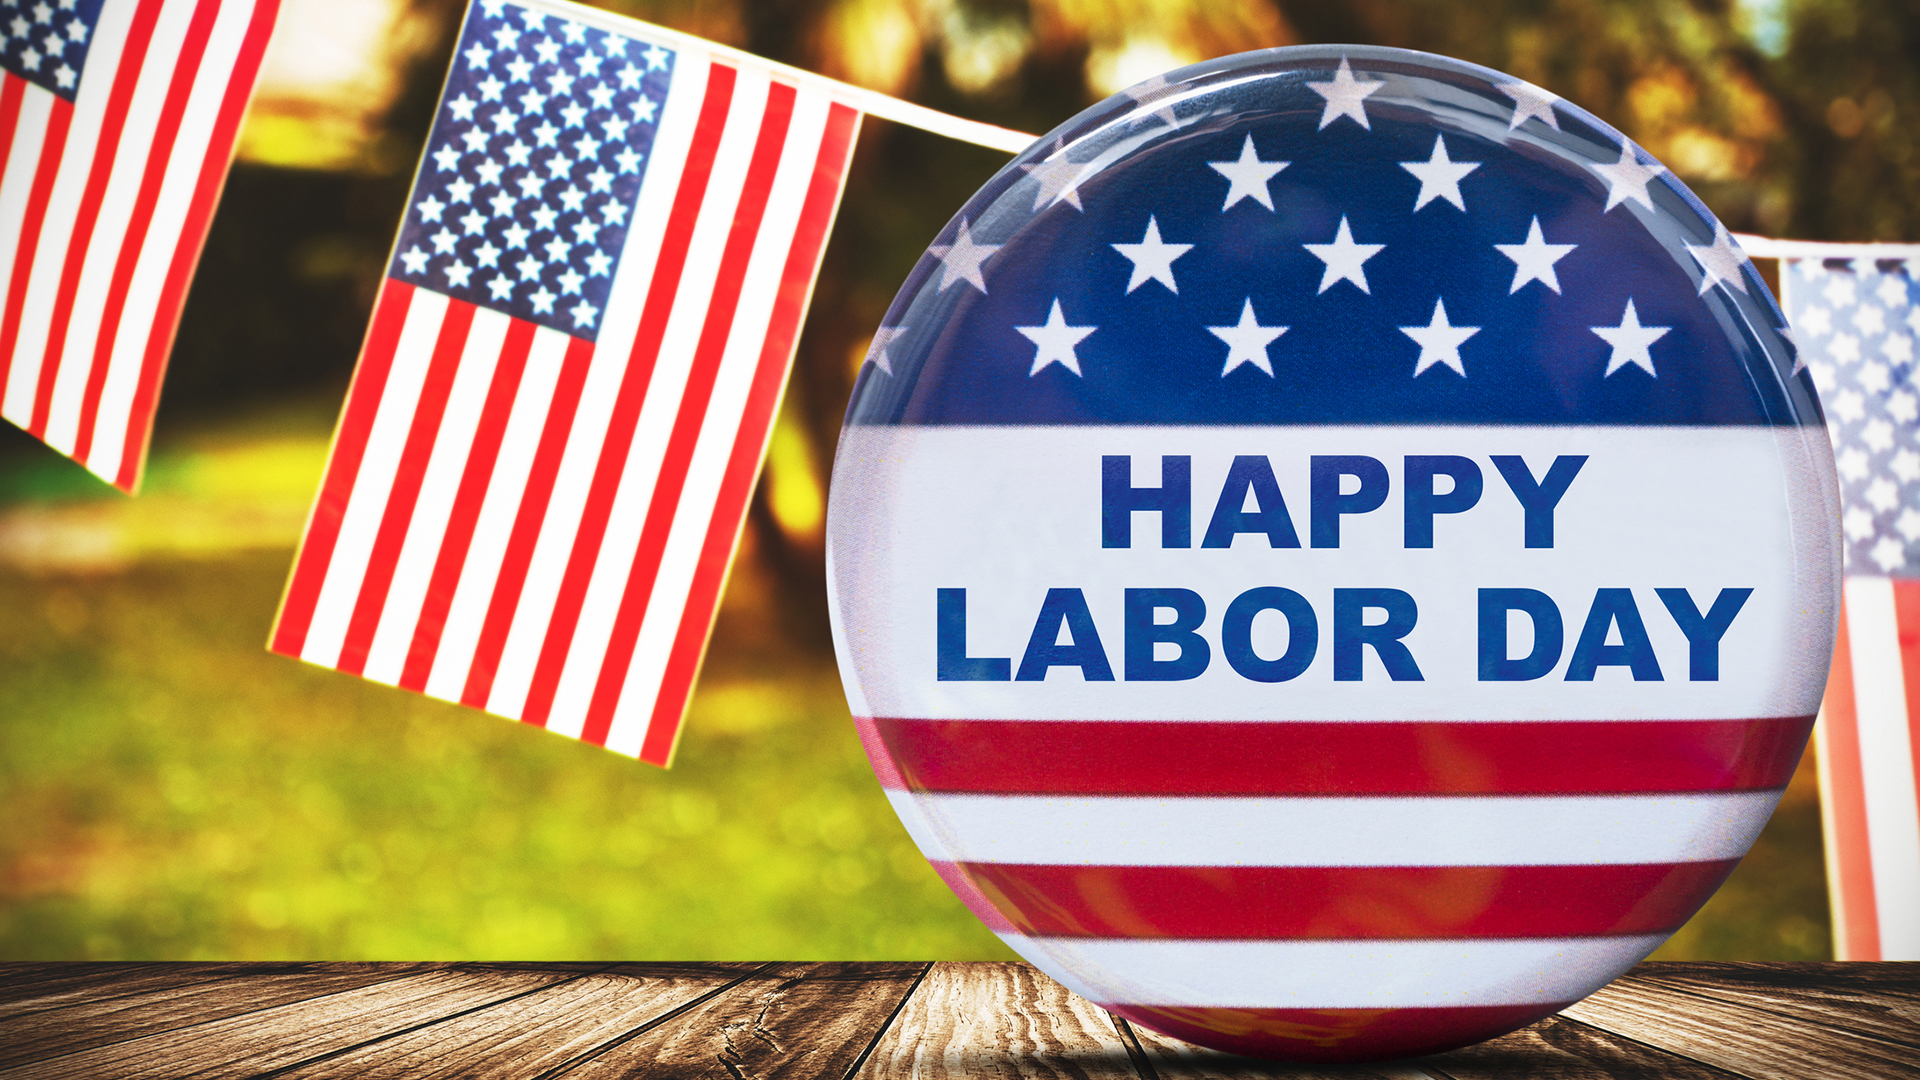 Labor Day Graphic Message for Digital Signage Communications